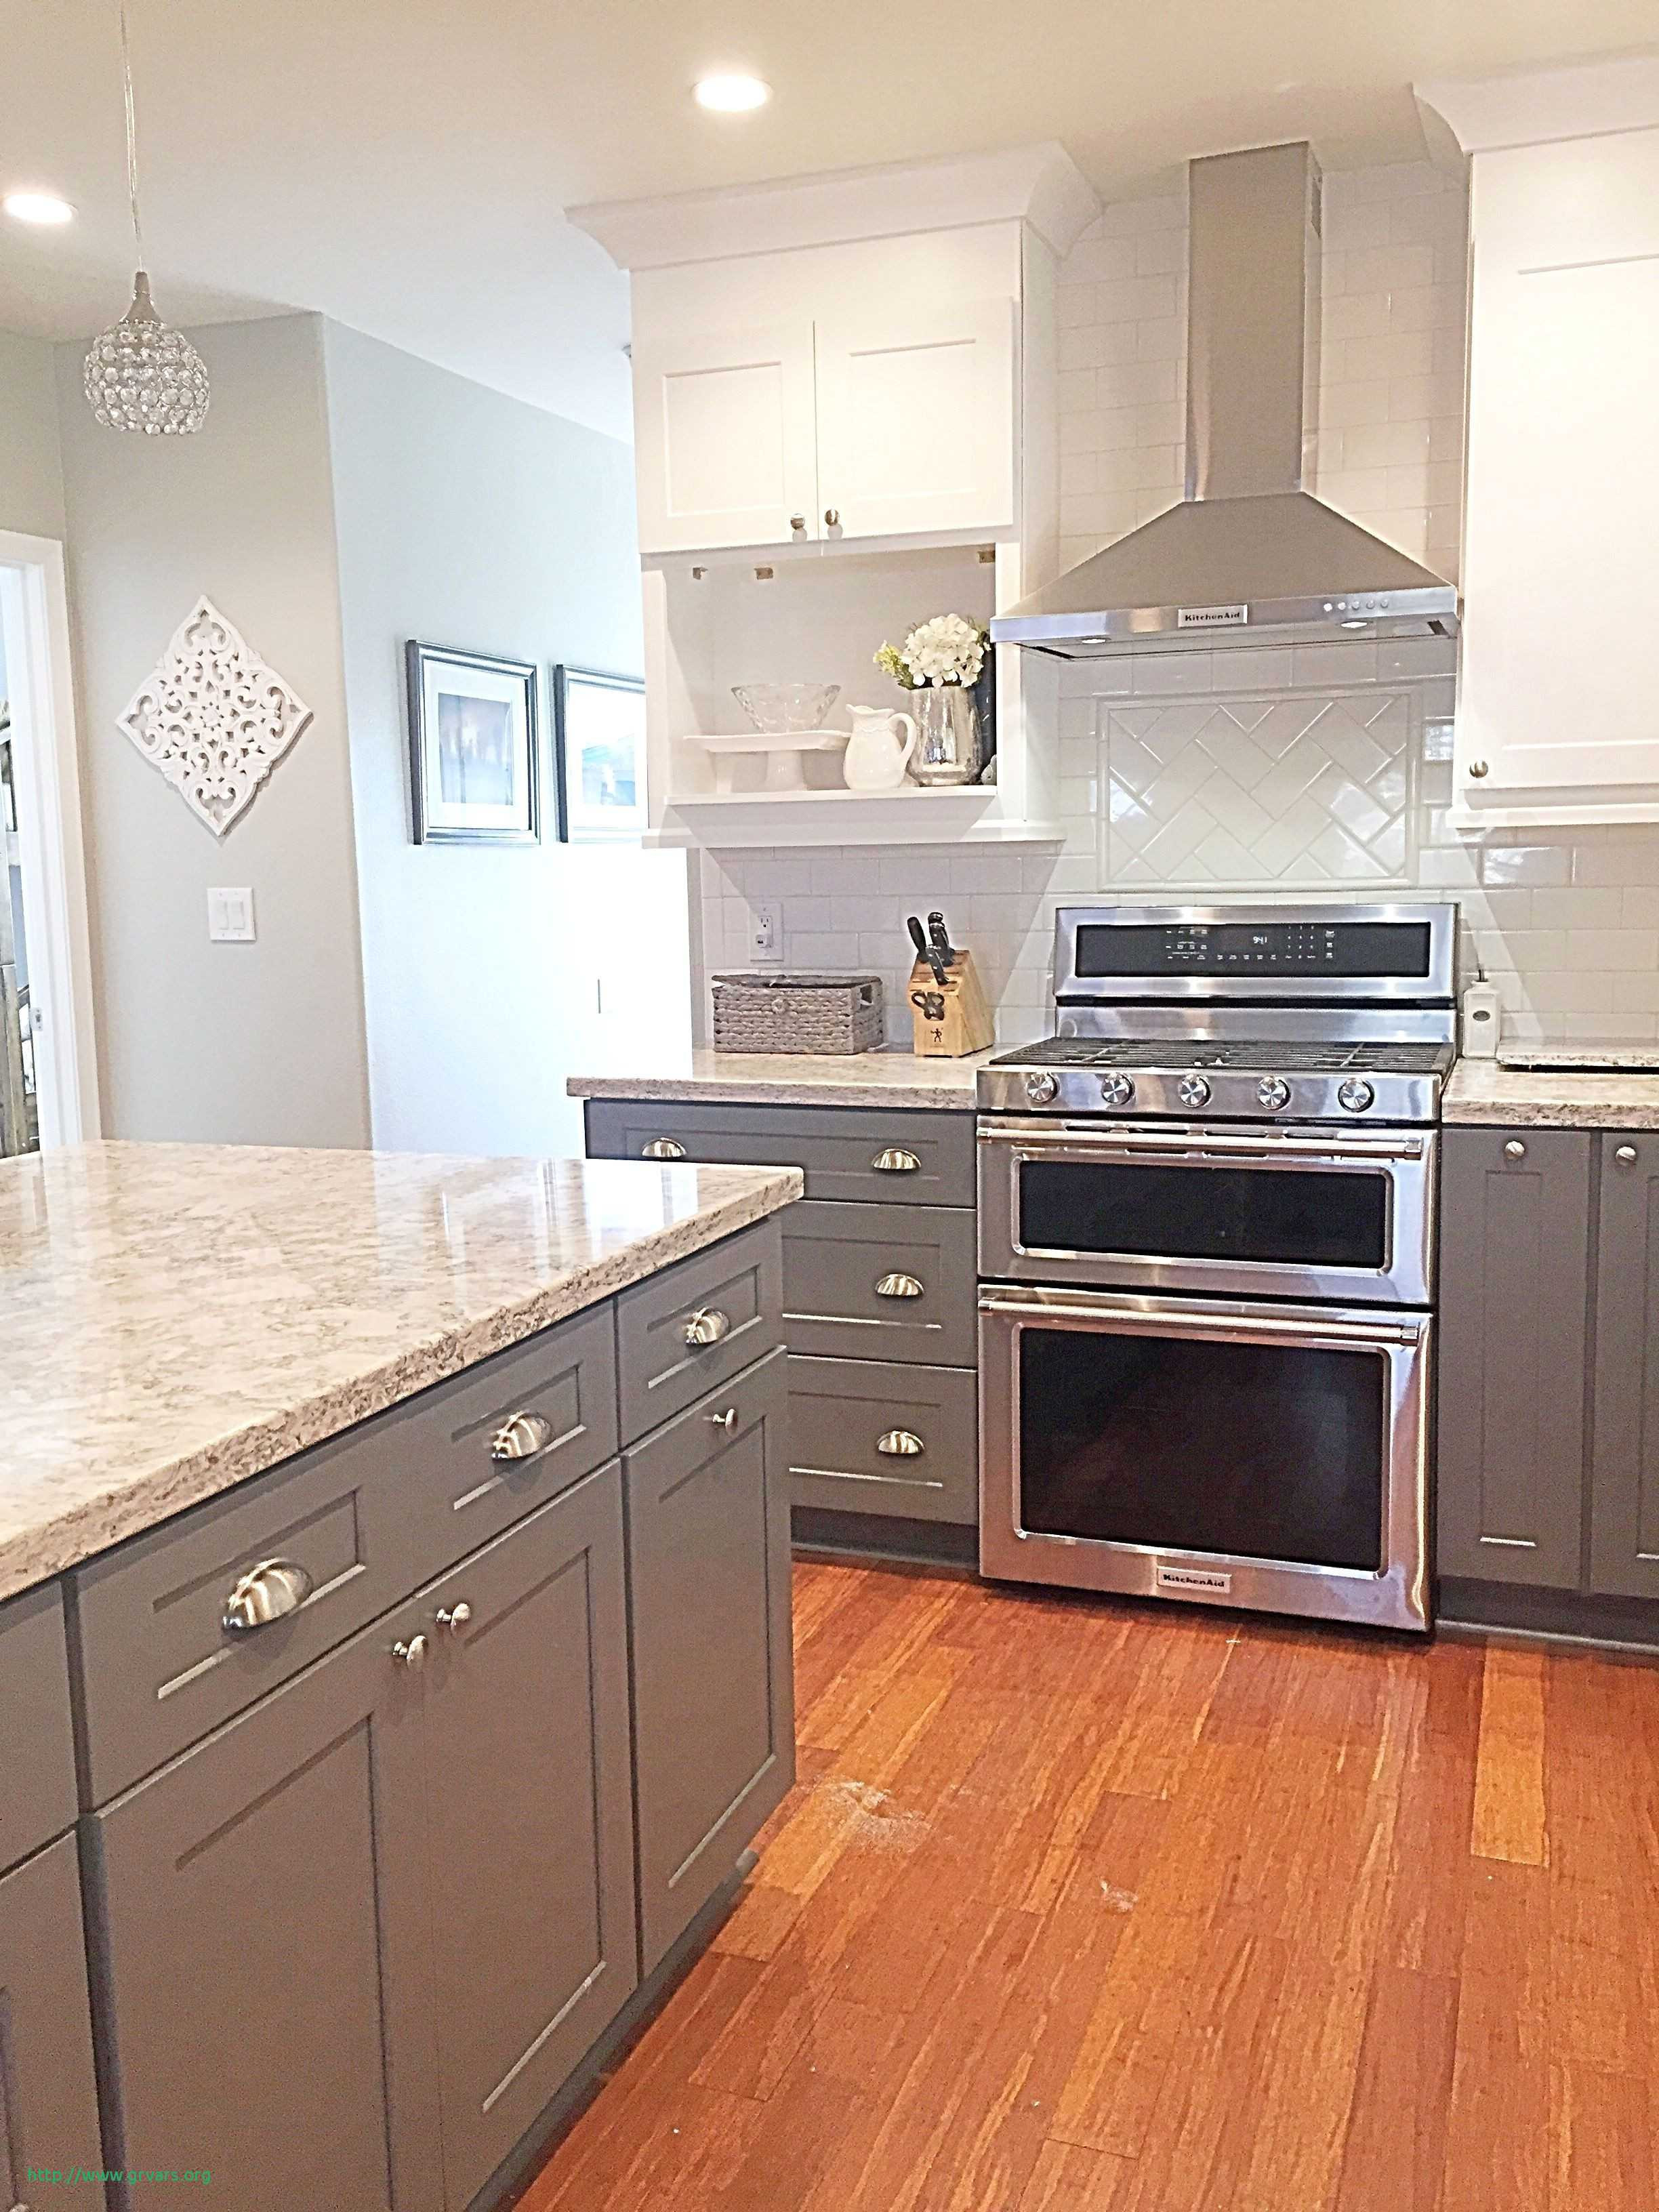 hardwood floor and cabinet color matching of 17 meilleur de what color cabinets go with light wood floors ideas inside kitchen light cabinets lovely cabinets for kitchen fresh ready made kitchen cabinets lovely